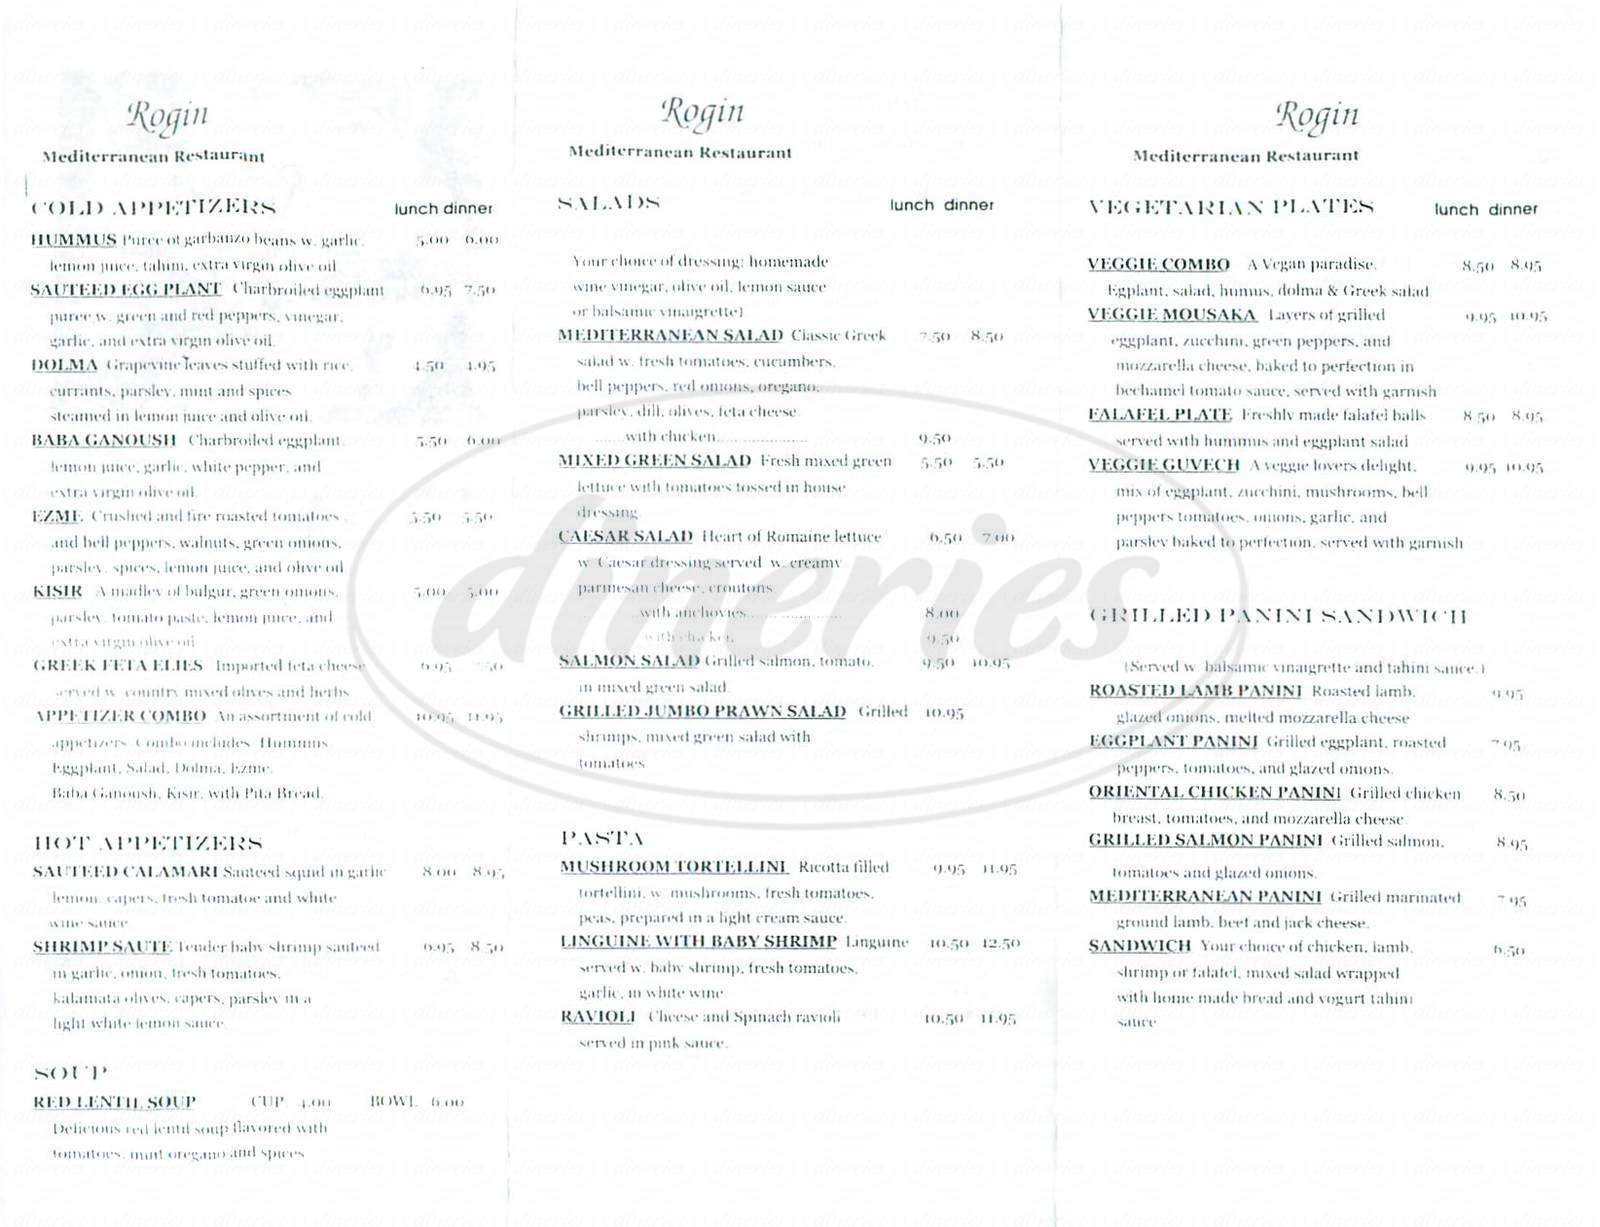 menu for Rogin Mediterranean